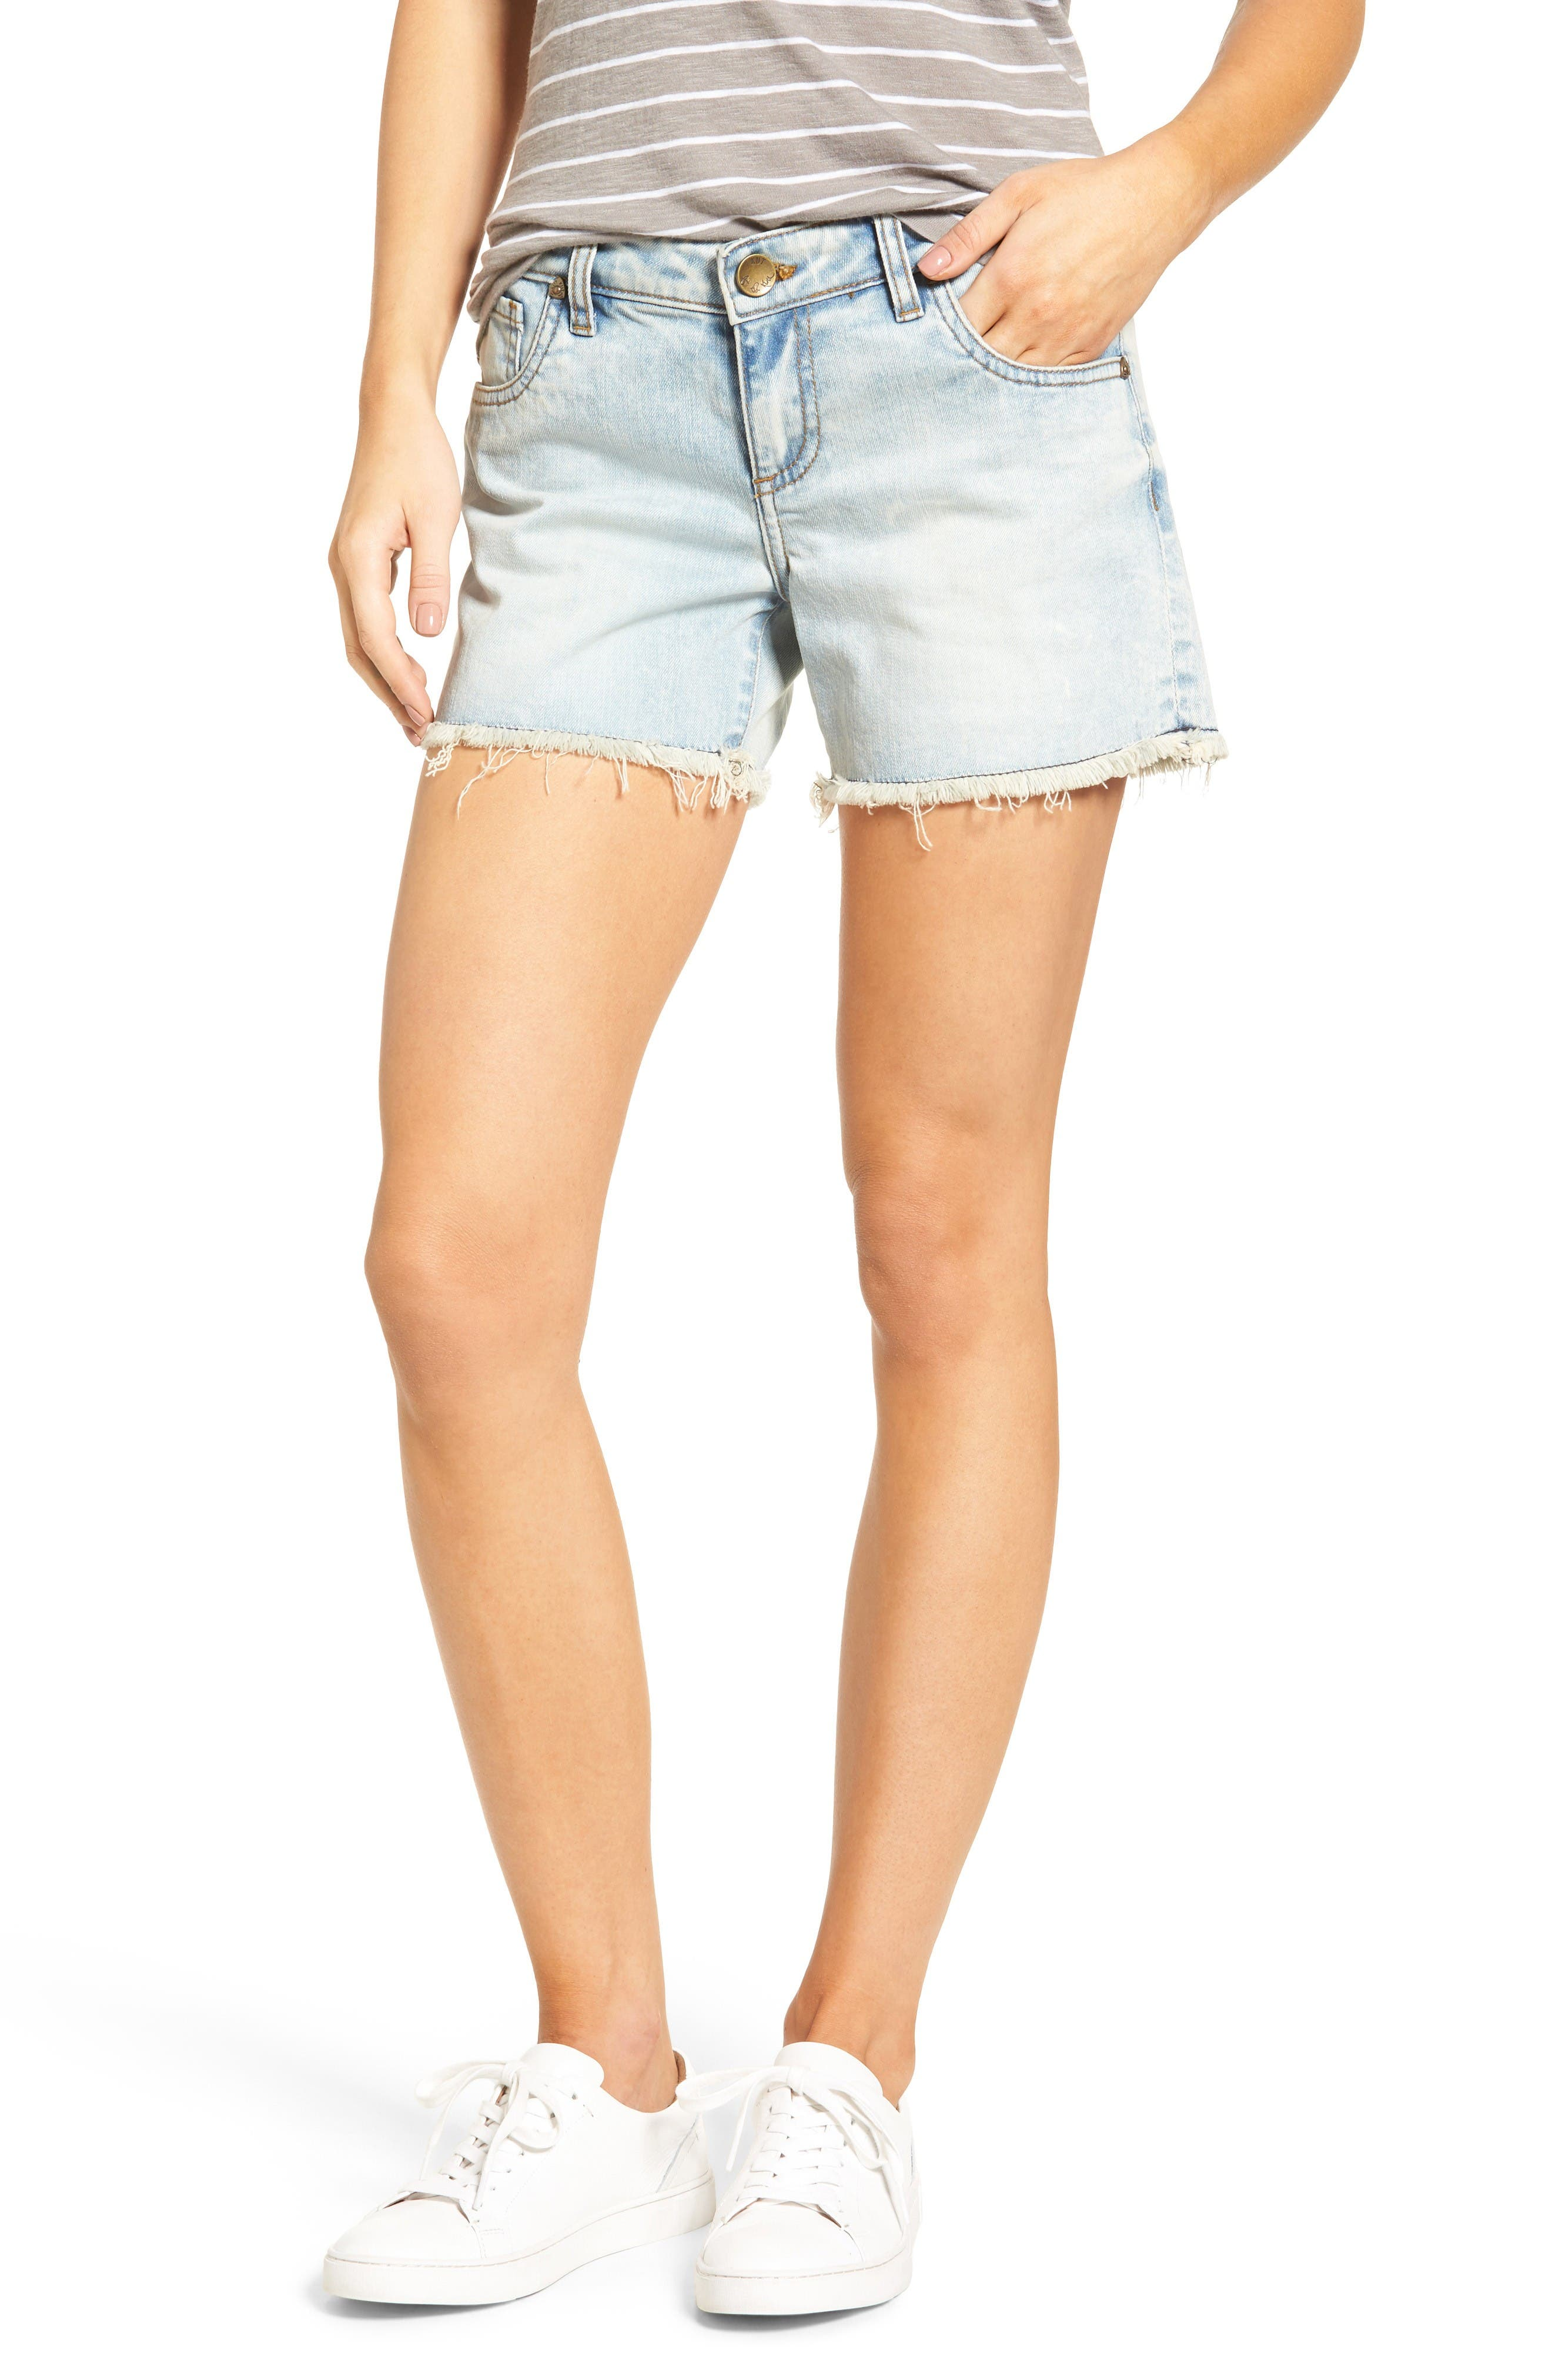 KUT from the Kloth Gidget Fray Hem Denim Shorts